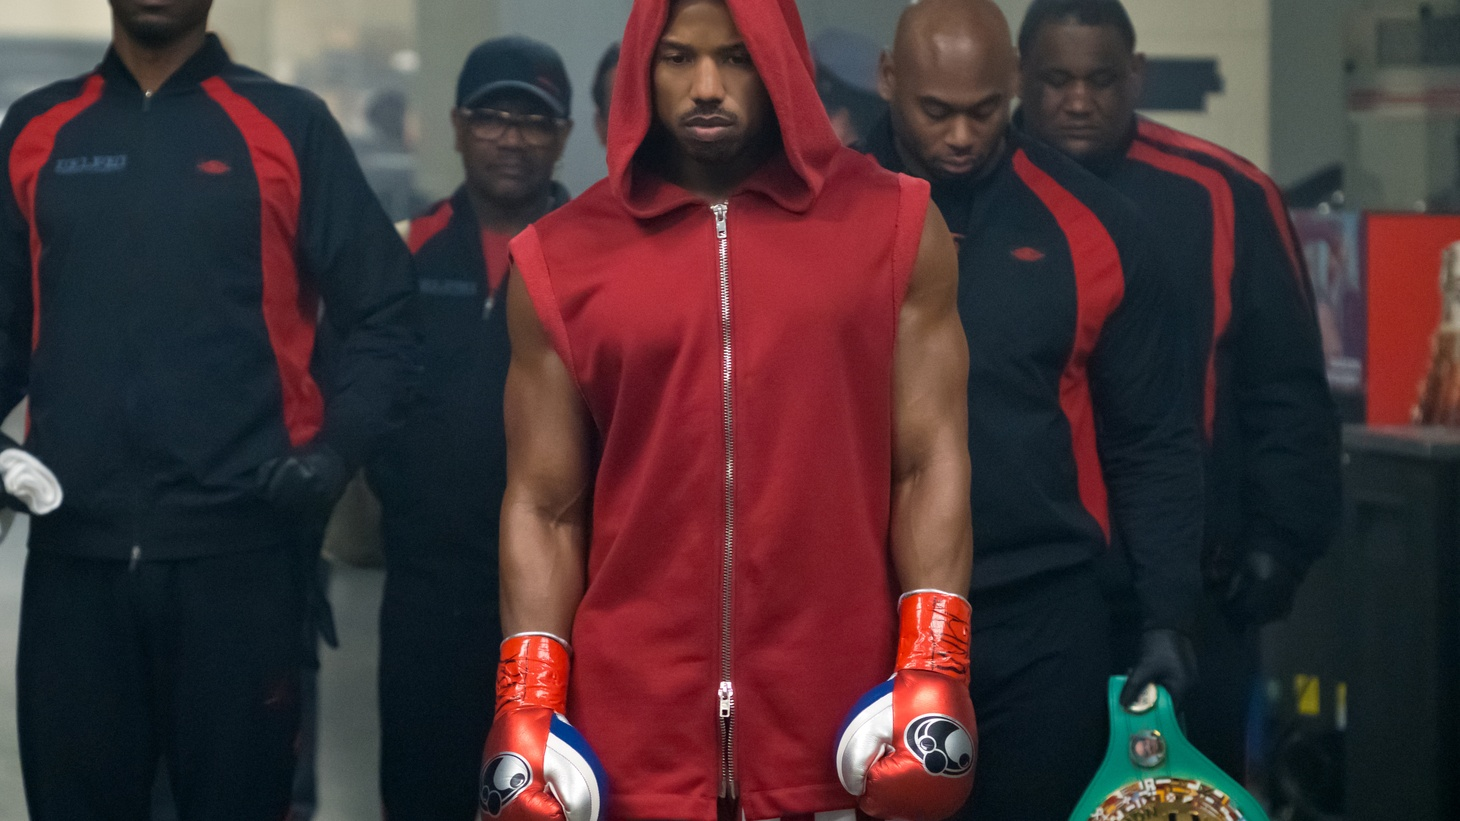 """Actor Michael B. Jordan talks pride and forging one's own path in """"Creed II."""""""